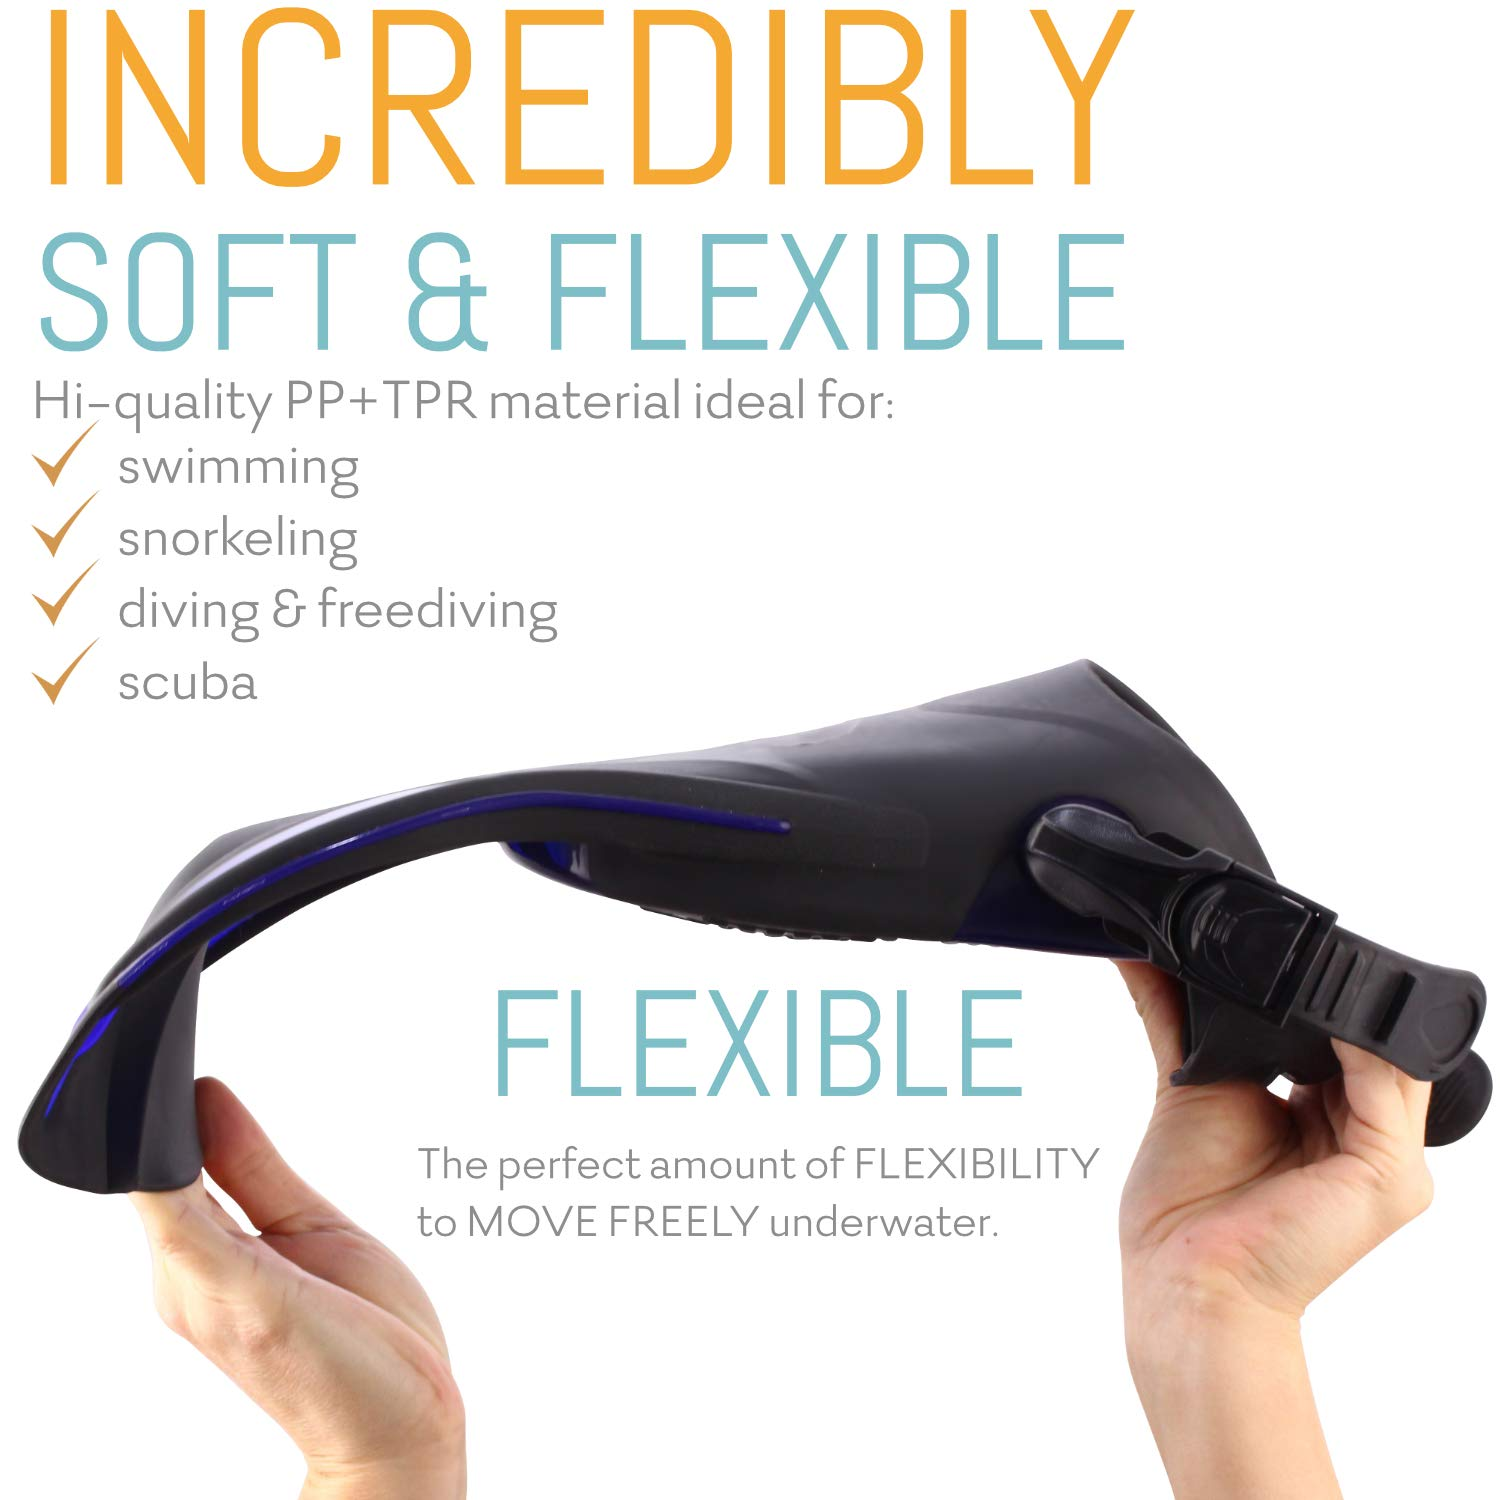 cozia design Swim Fins with Water Socks Snorkel Fins Swimming Optimized for Ease of use with Neoprene Socks for Extra Comfort